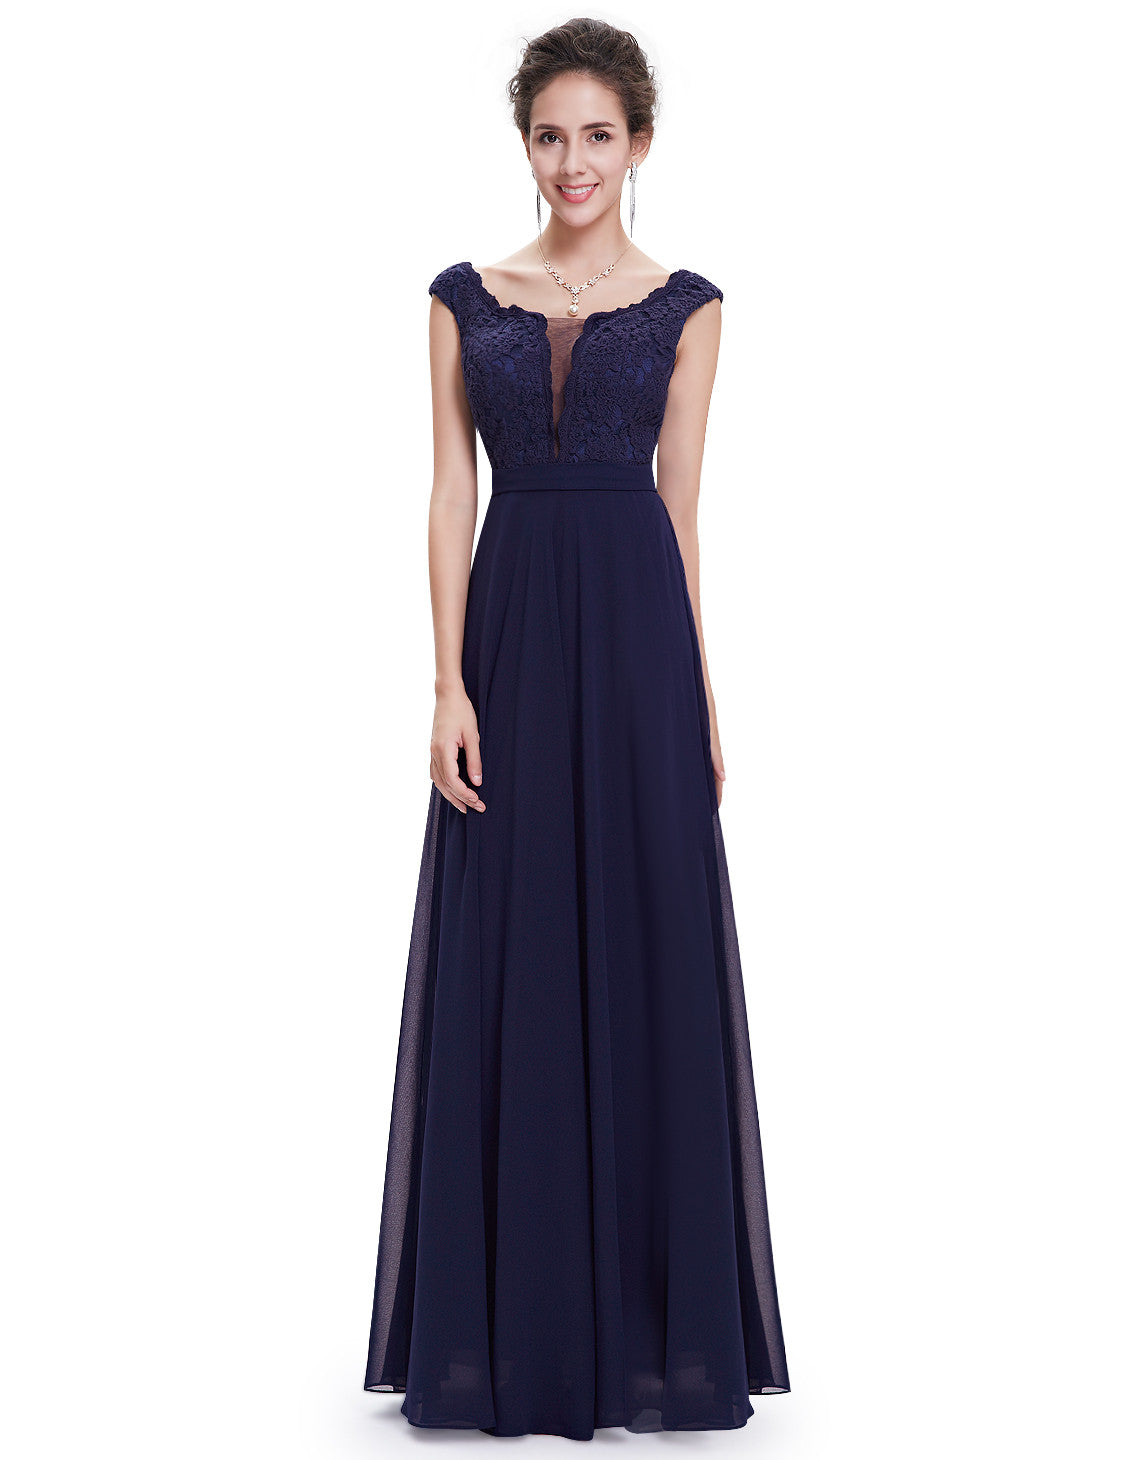 Elegant Round Neck Long Party Evening Dress